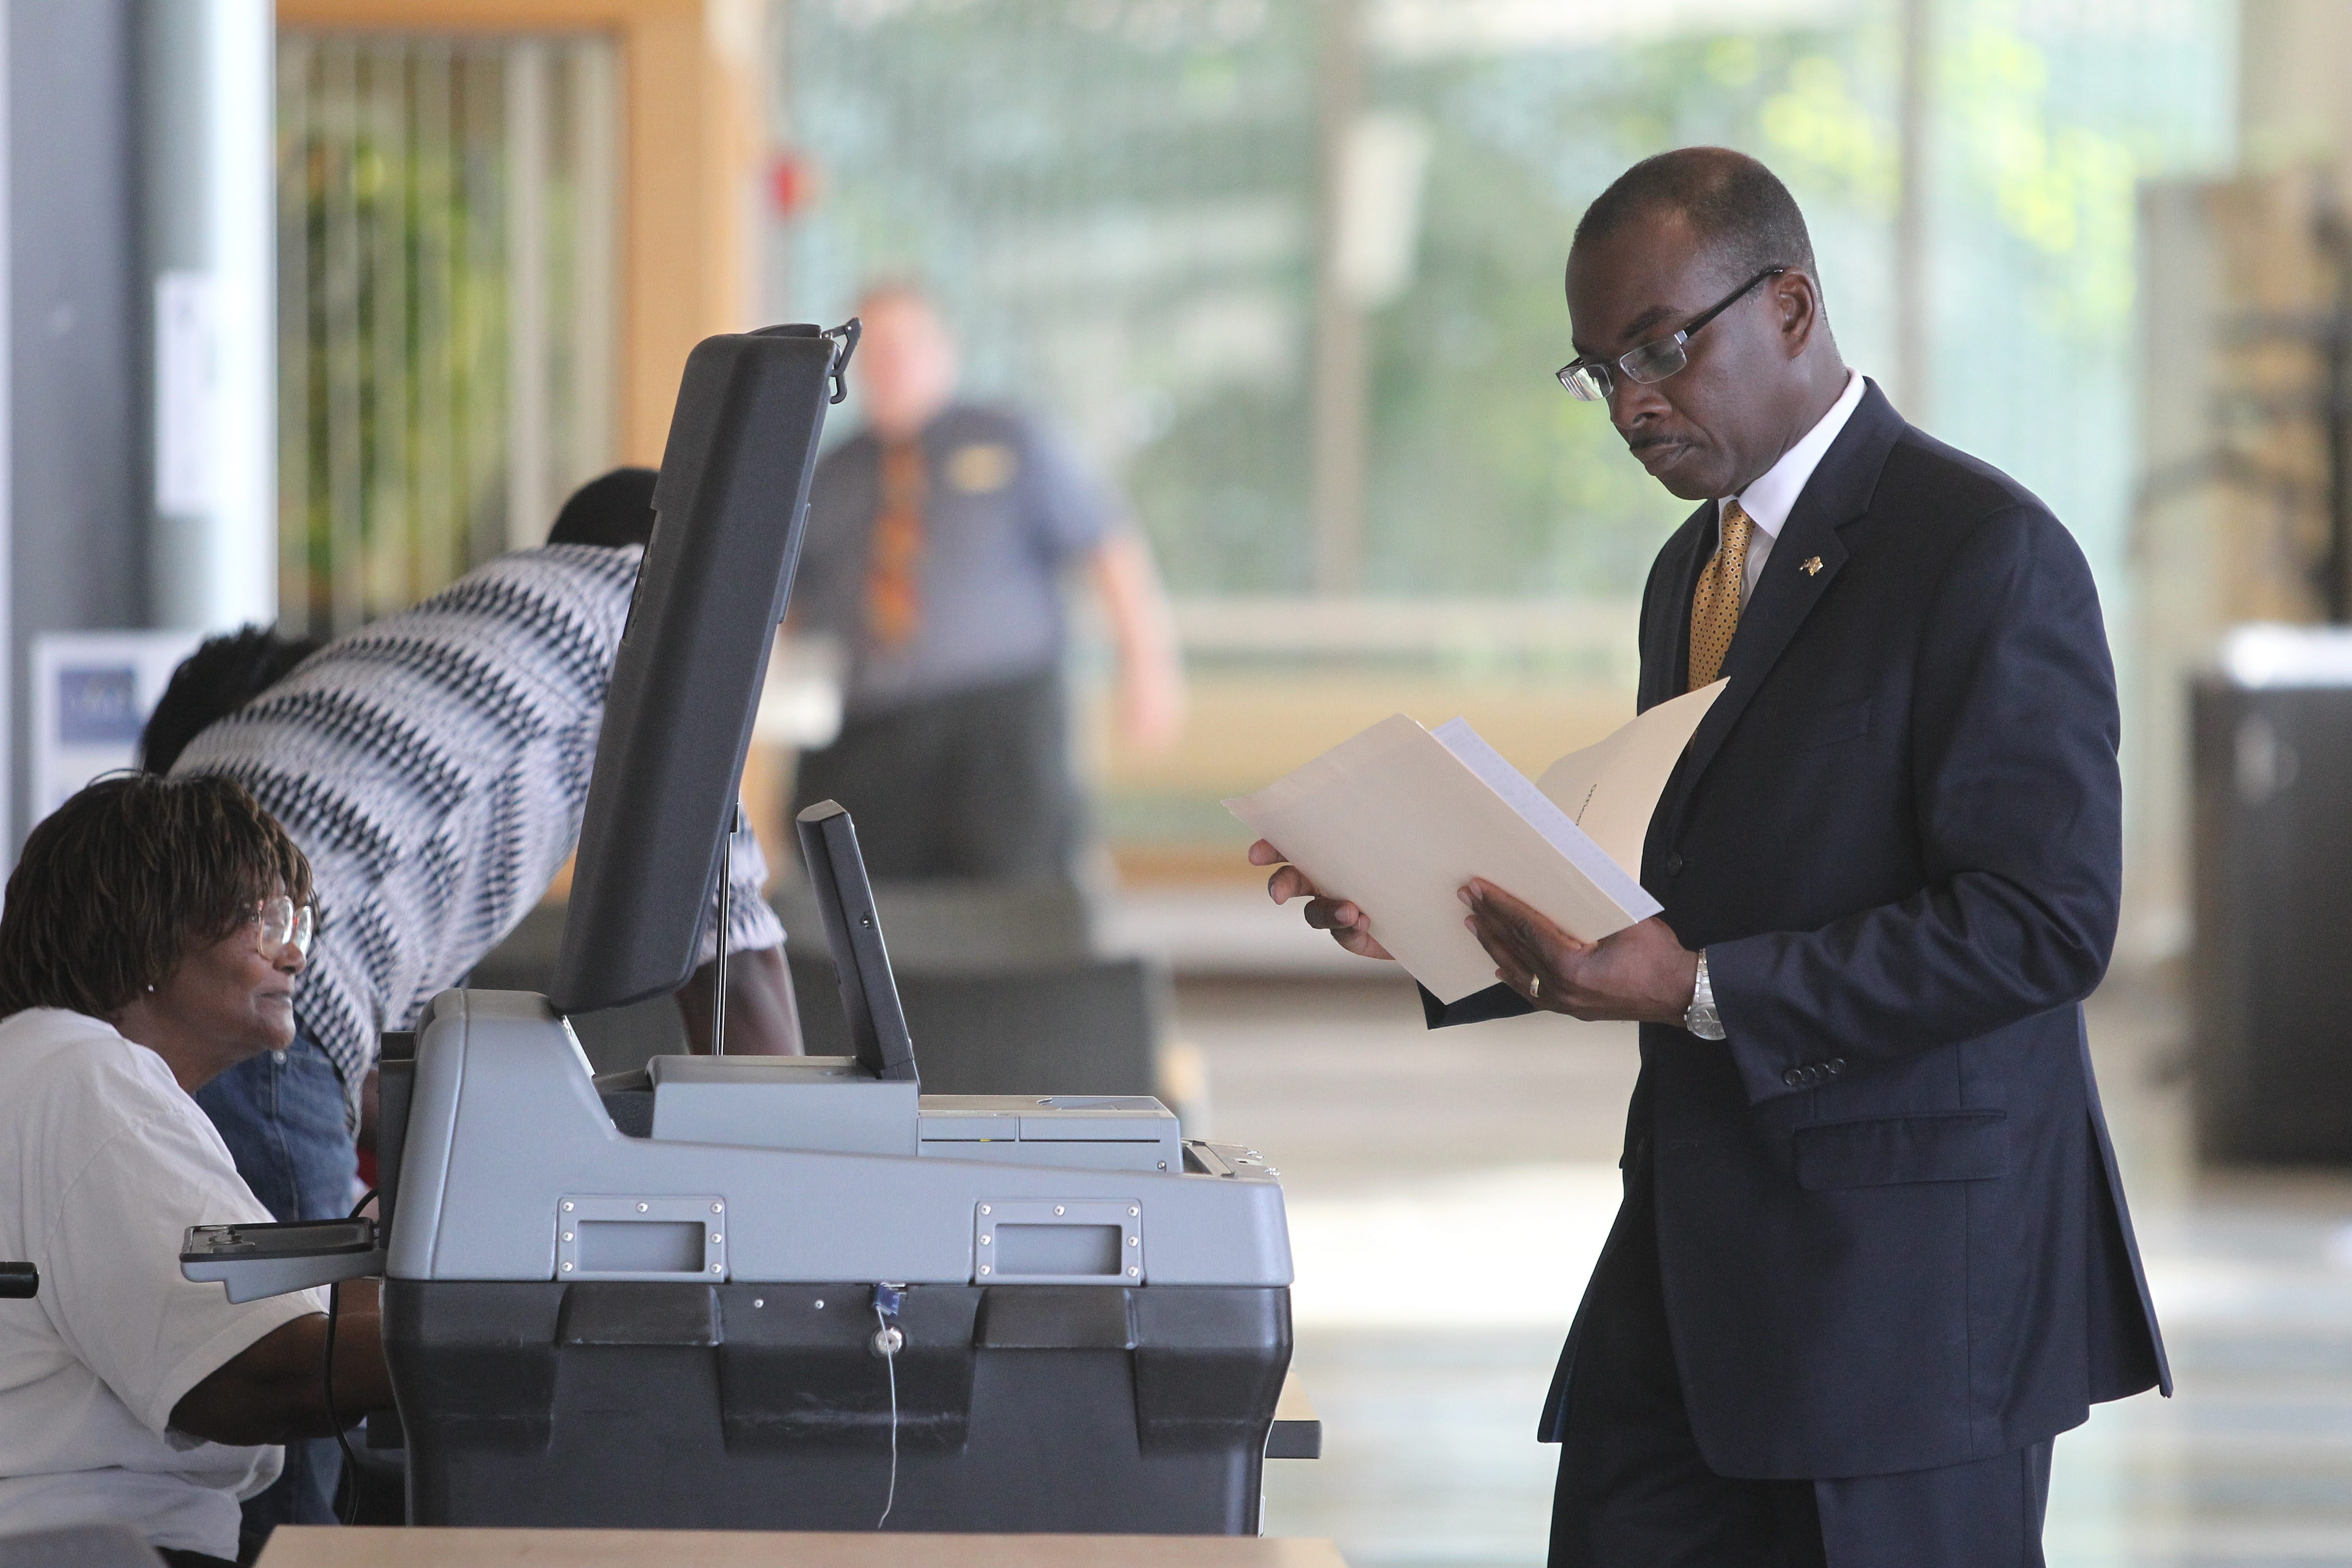 Incumbent Mayor Byron Brown, facing a challenge from Bernard Tolbert in today's Democratic primary voting, checks his ballot before submitting it as he and his wife Michelle vote at the Canisius College Student Center this morning.